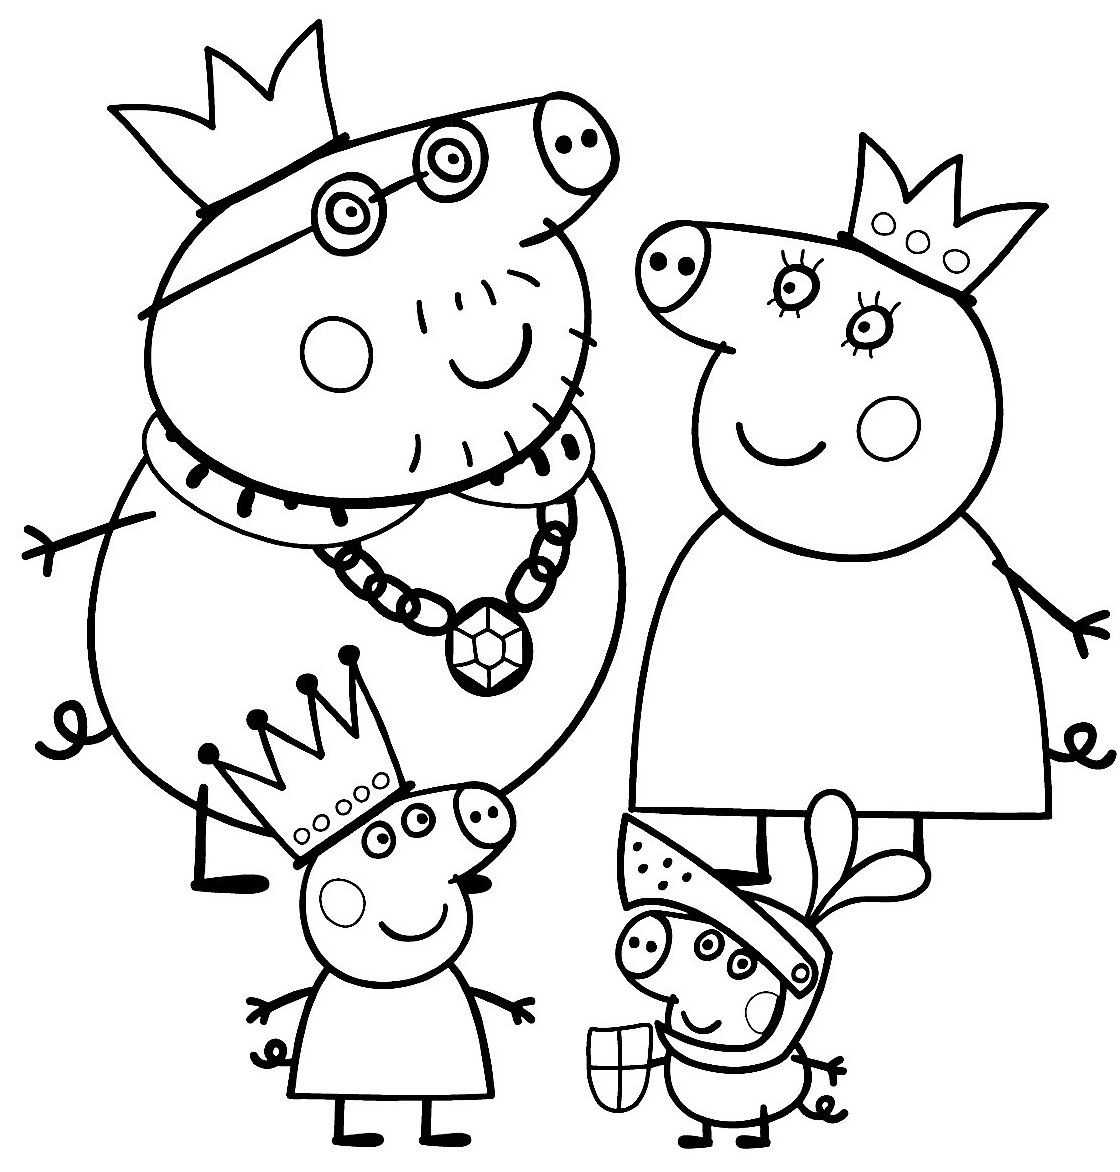 peppa pig pictures for colouring peppa pig coloring pages free printable coloring home colouring pig peppa pictures for